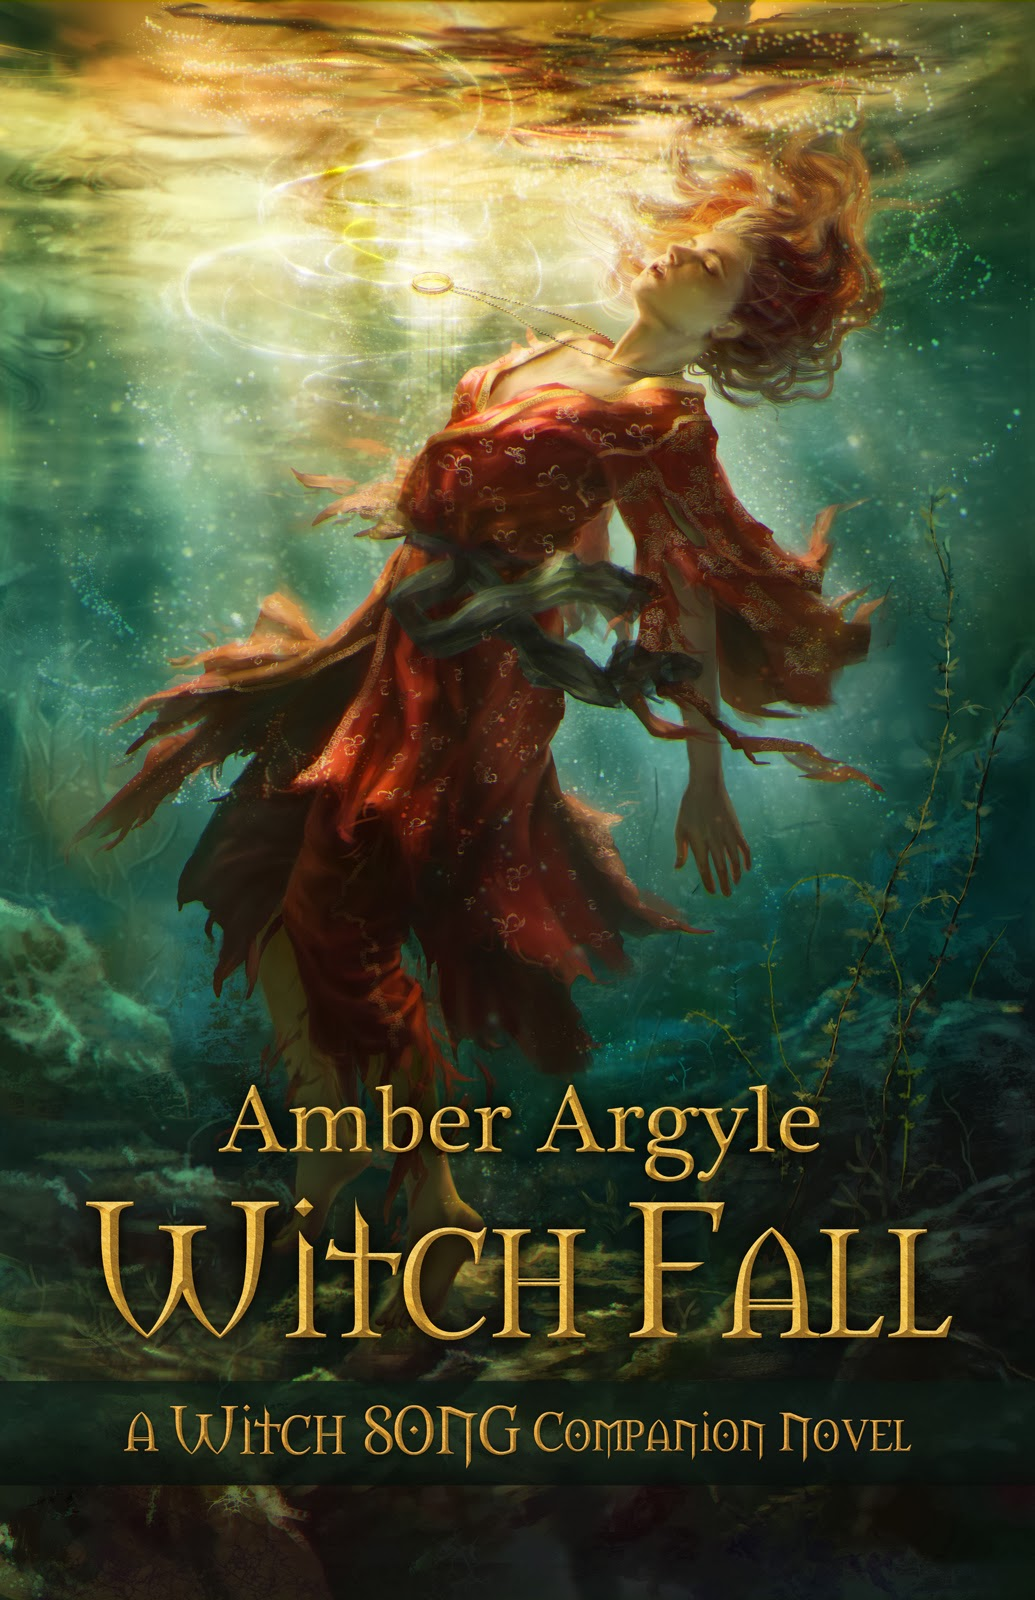 http://www.amazon.com/Witch-Fall-Song-3-ebook/dp/B00H9MJL48/ref=pd_sim_kstore_2?ie=UTF8&refRID=1MK6F9H1VNWMGHBFZJG9